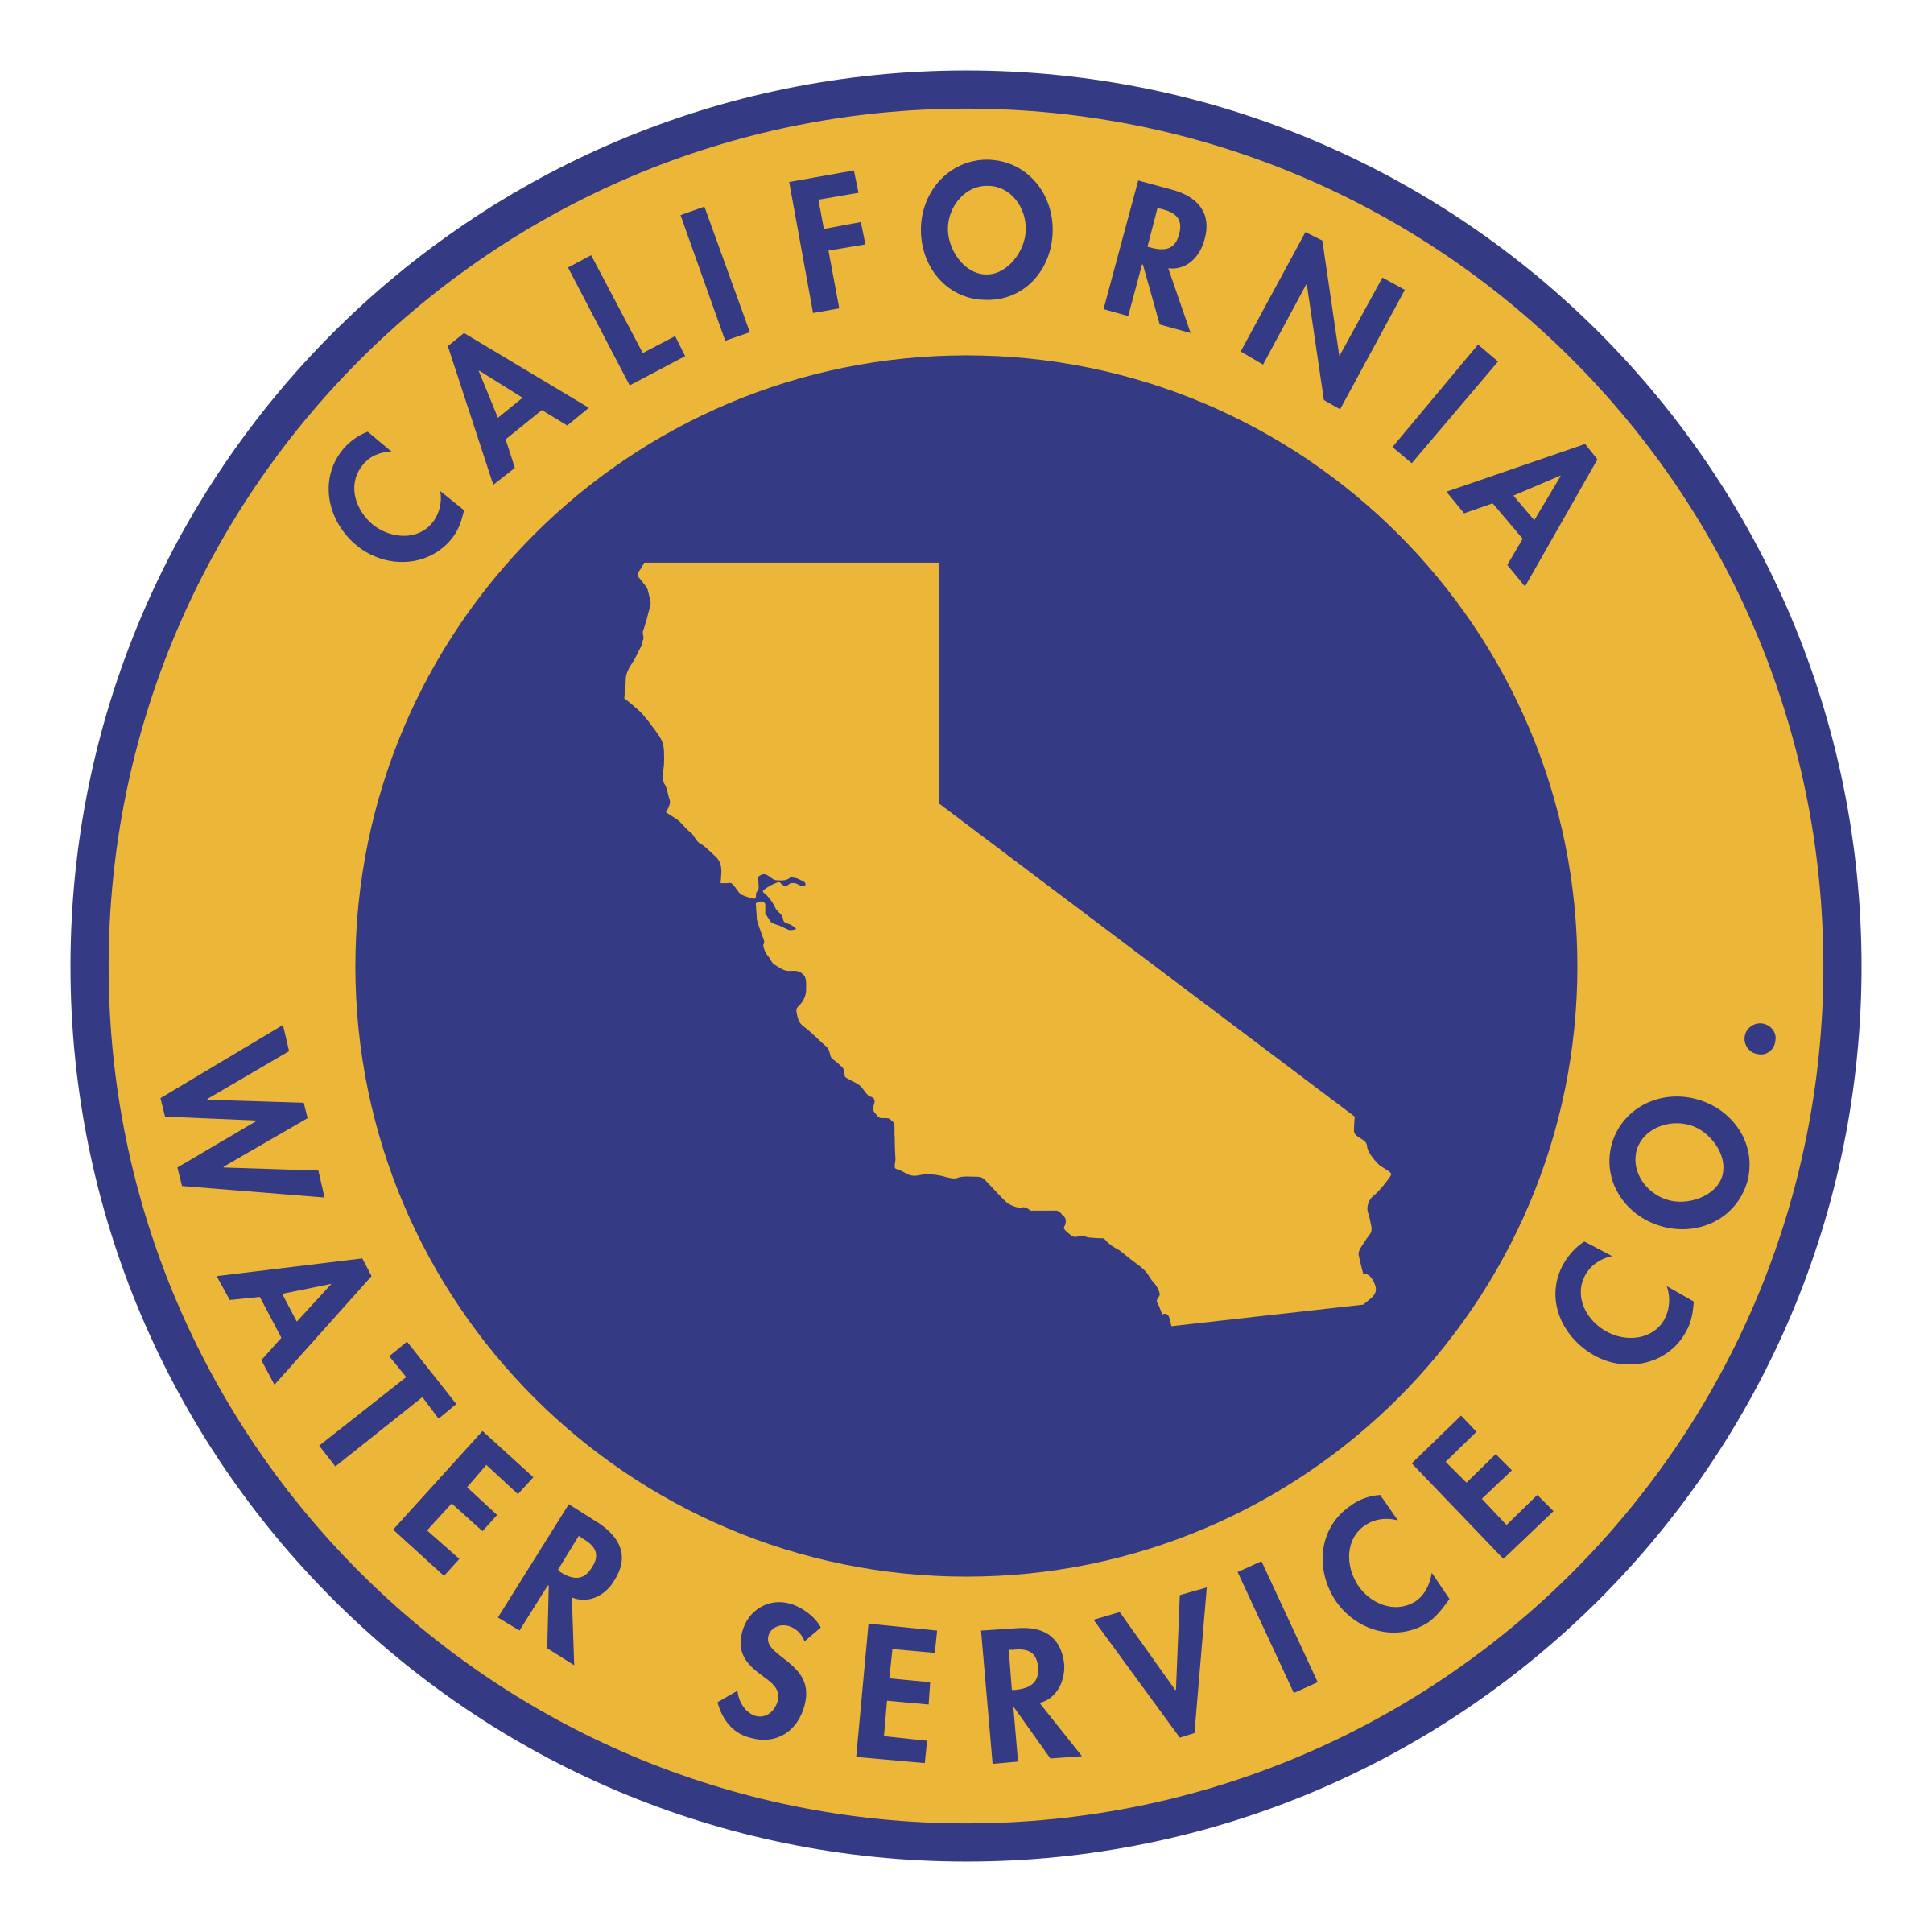 Image result for california water service logo